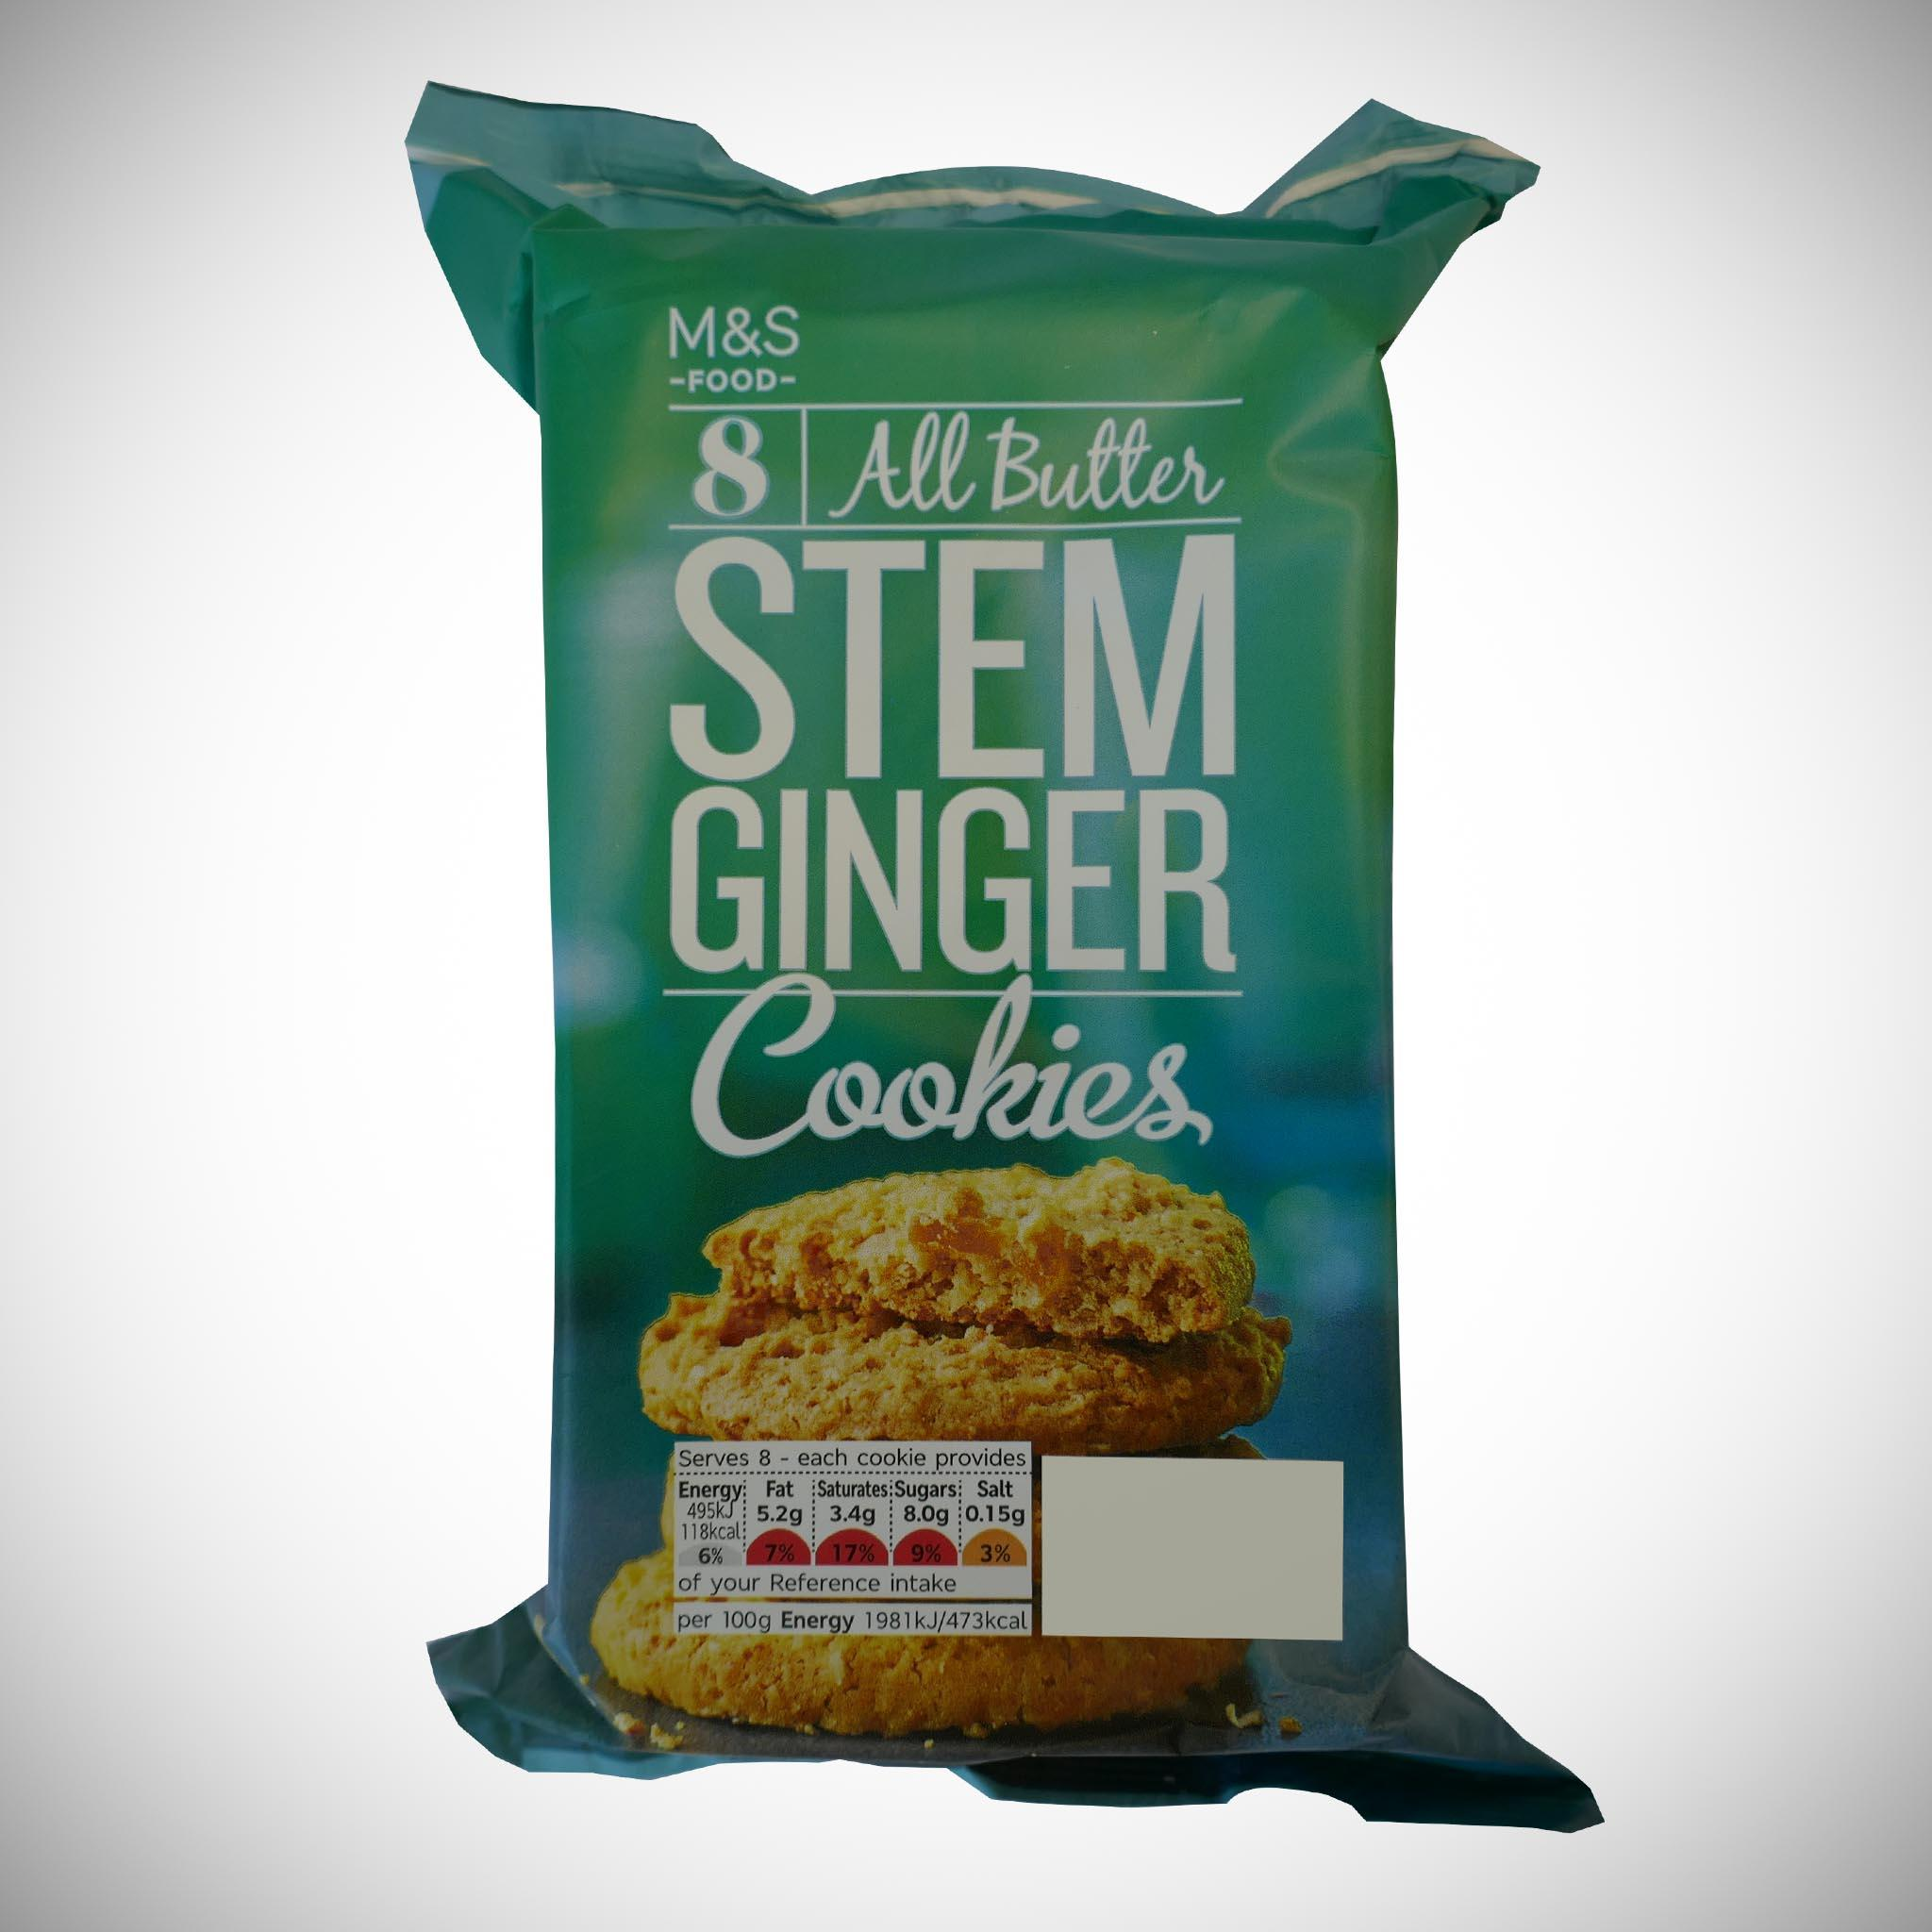 All Butter Stem Ginger Cookies 200g